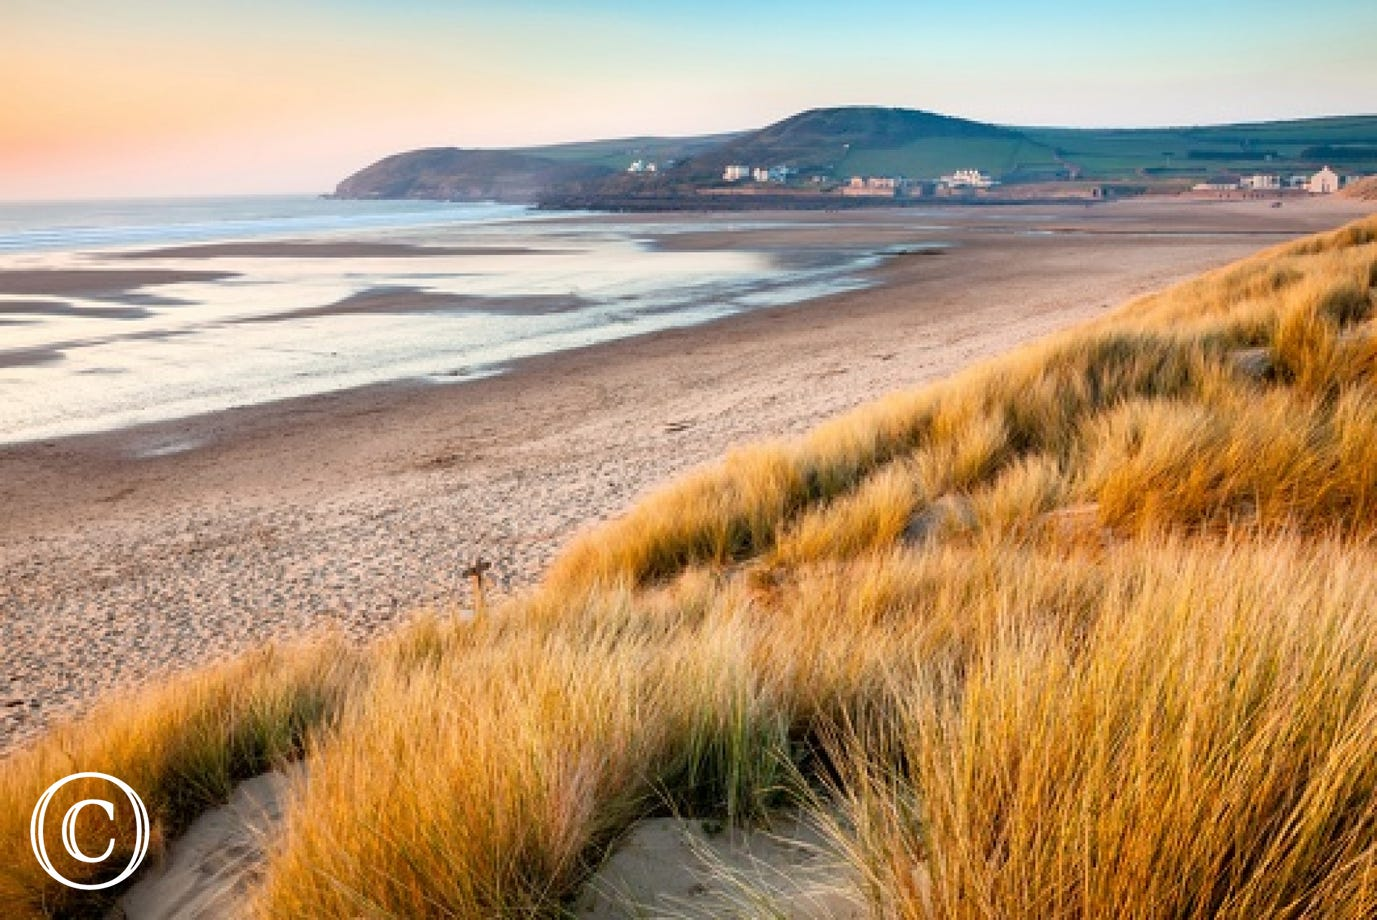 The beautiful beach of Croyde is a 10 minute walk away